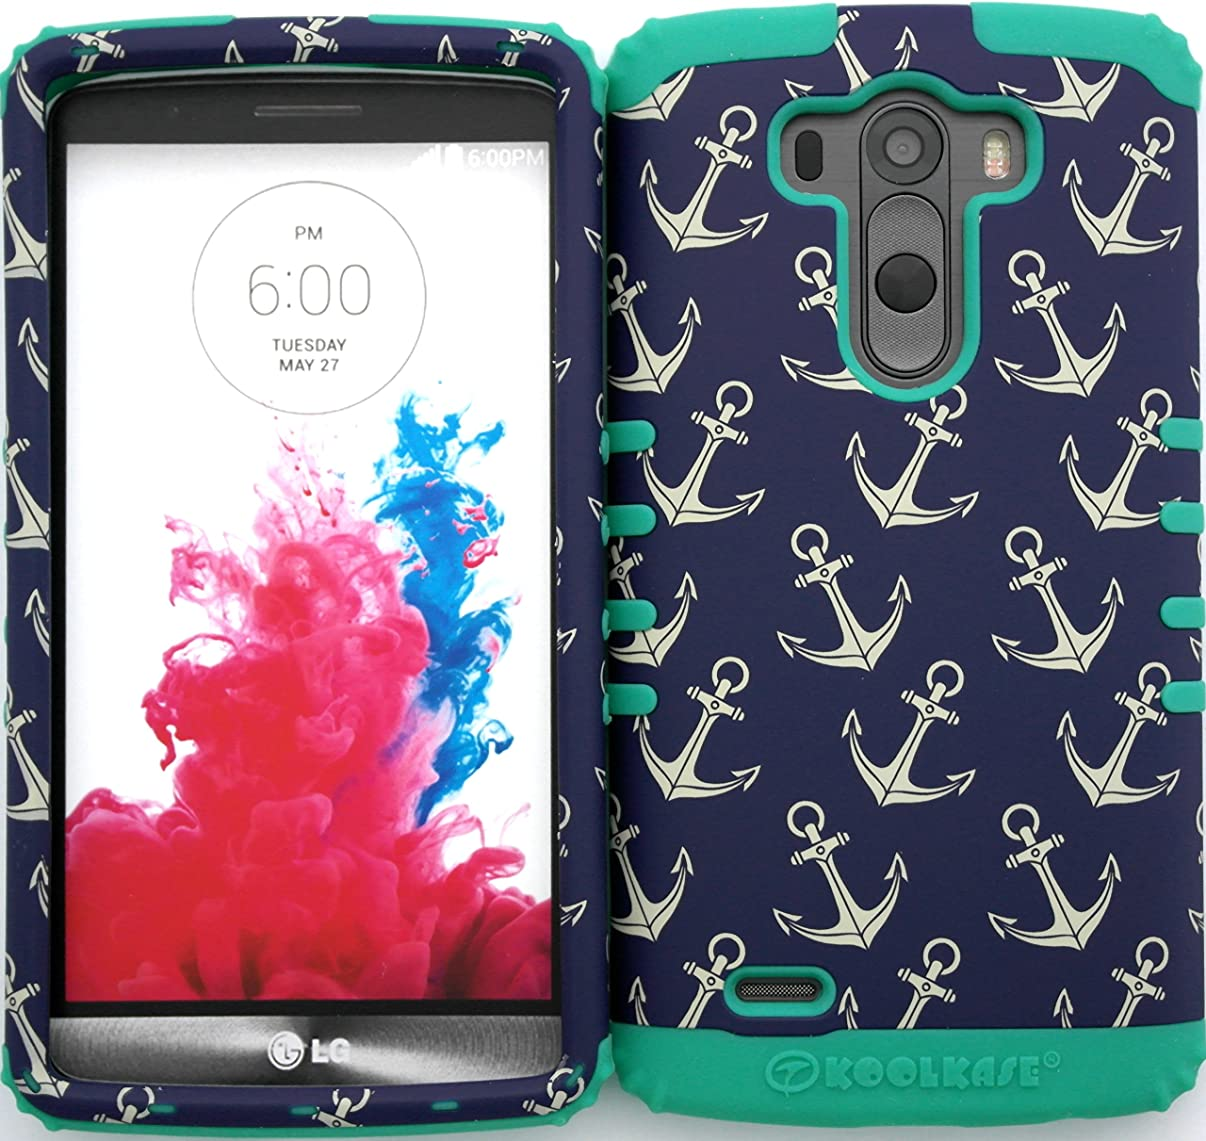 Wireless Fones TM Hybrid Dual Layer Cover Case for LG G3 Tiny Anchor Patterns Snap on + Teal Skin